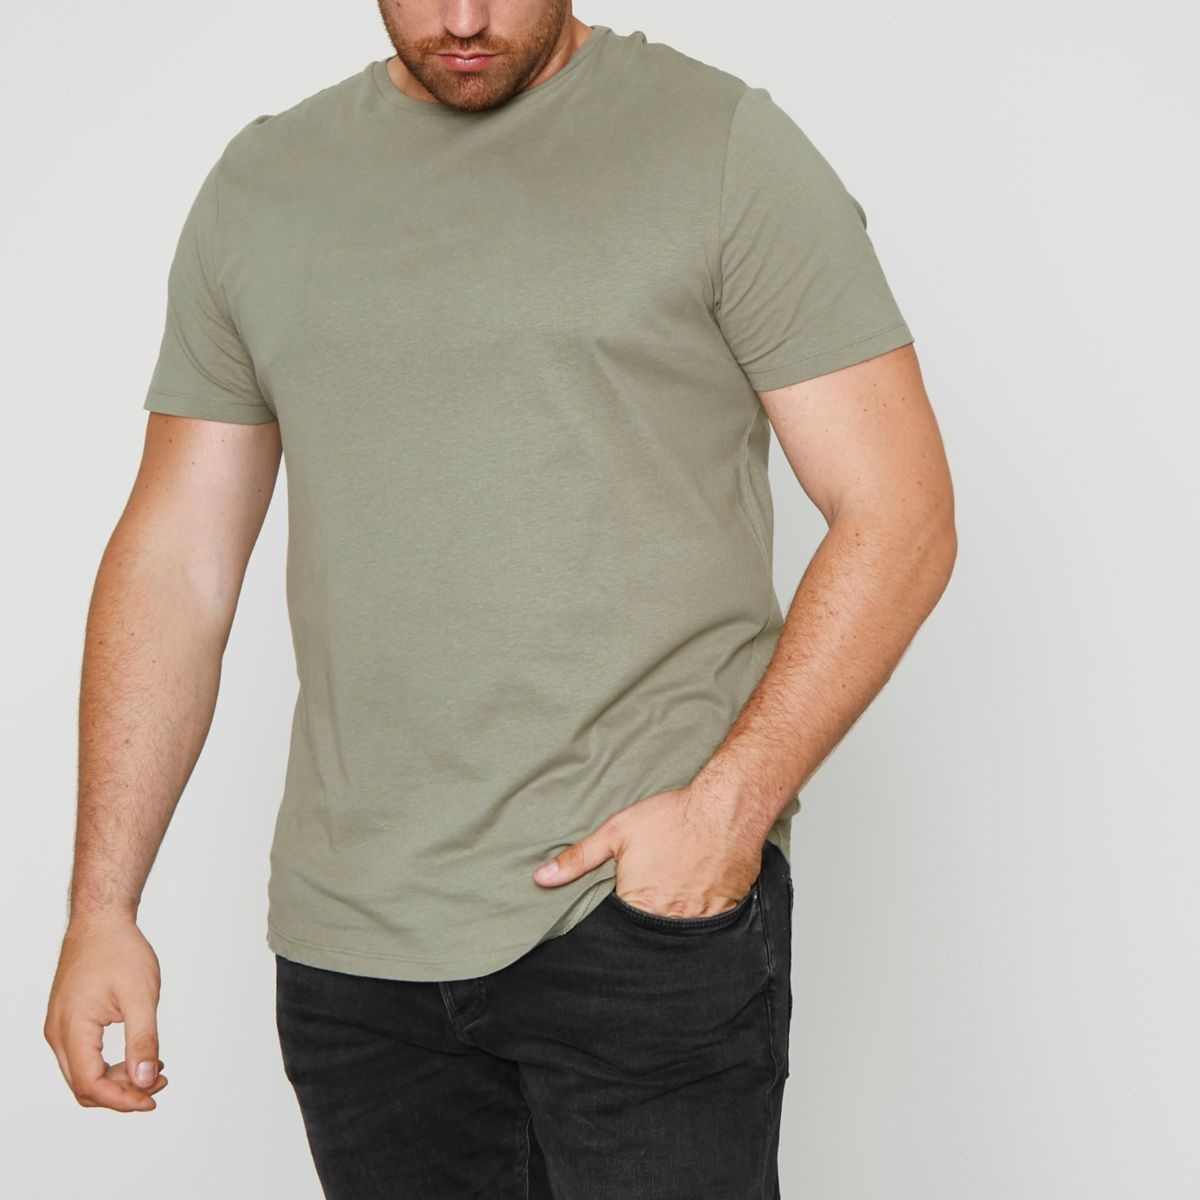 RI Big and Tall - Groen T-shirt met ronde zoom